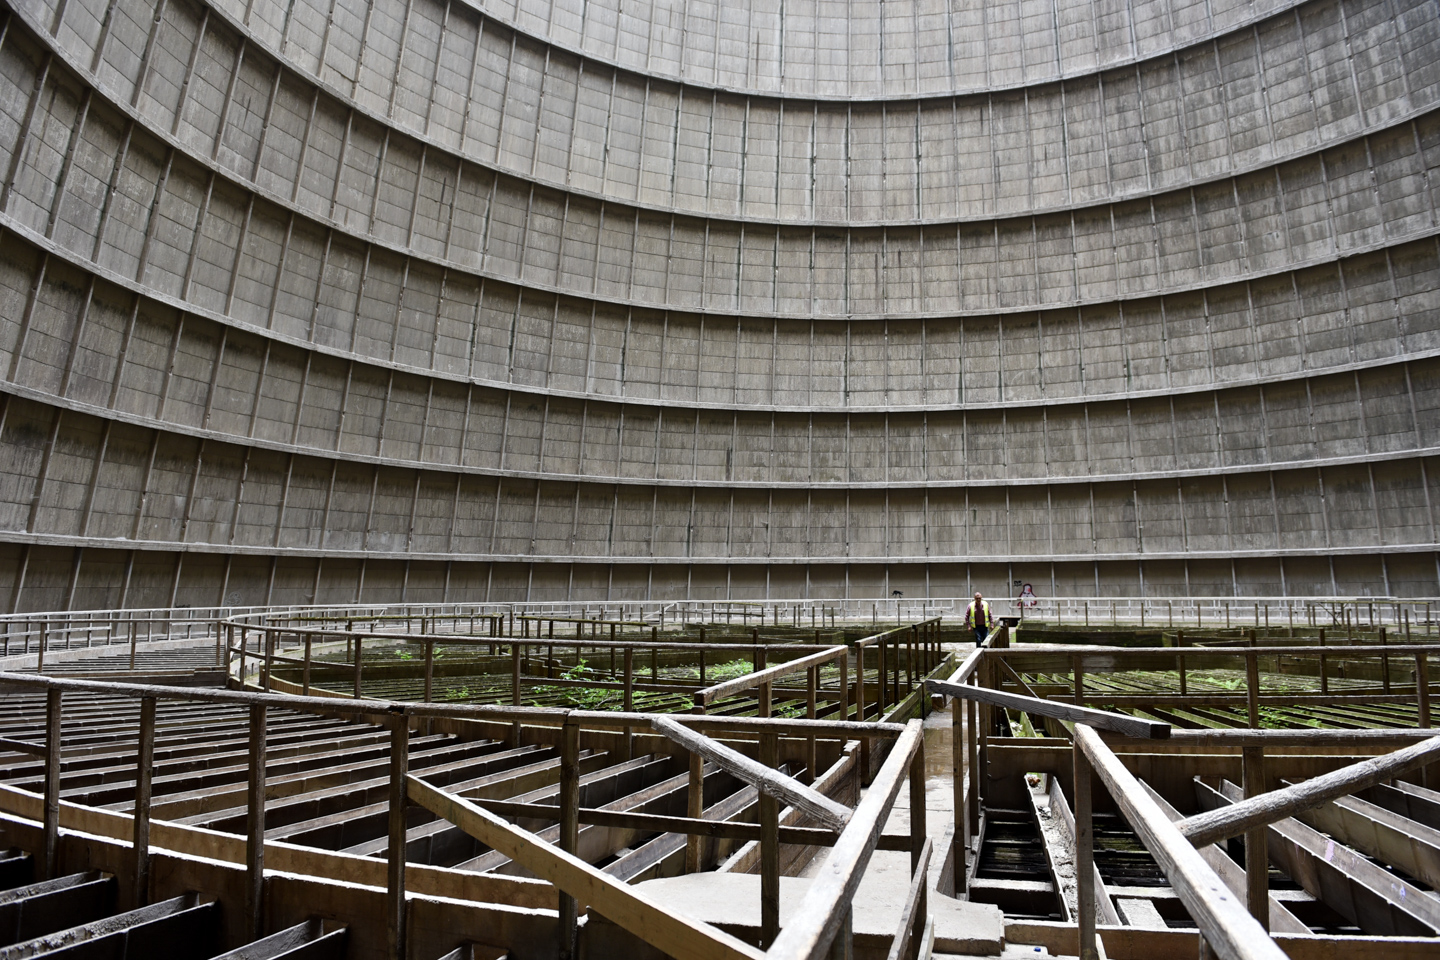 - Belgium - The client wanted industrial decay; Allingham Production secured this huge dis-used cooling tower, which became the subject of VXF photogrammetry and LiDAR for a major motion picture.We provided specialist rope access for the lower levels and the views from above were covered by a state of the art drone shipped from the UK.